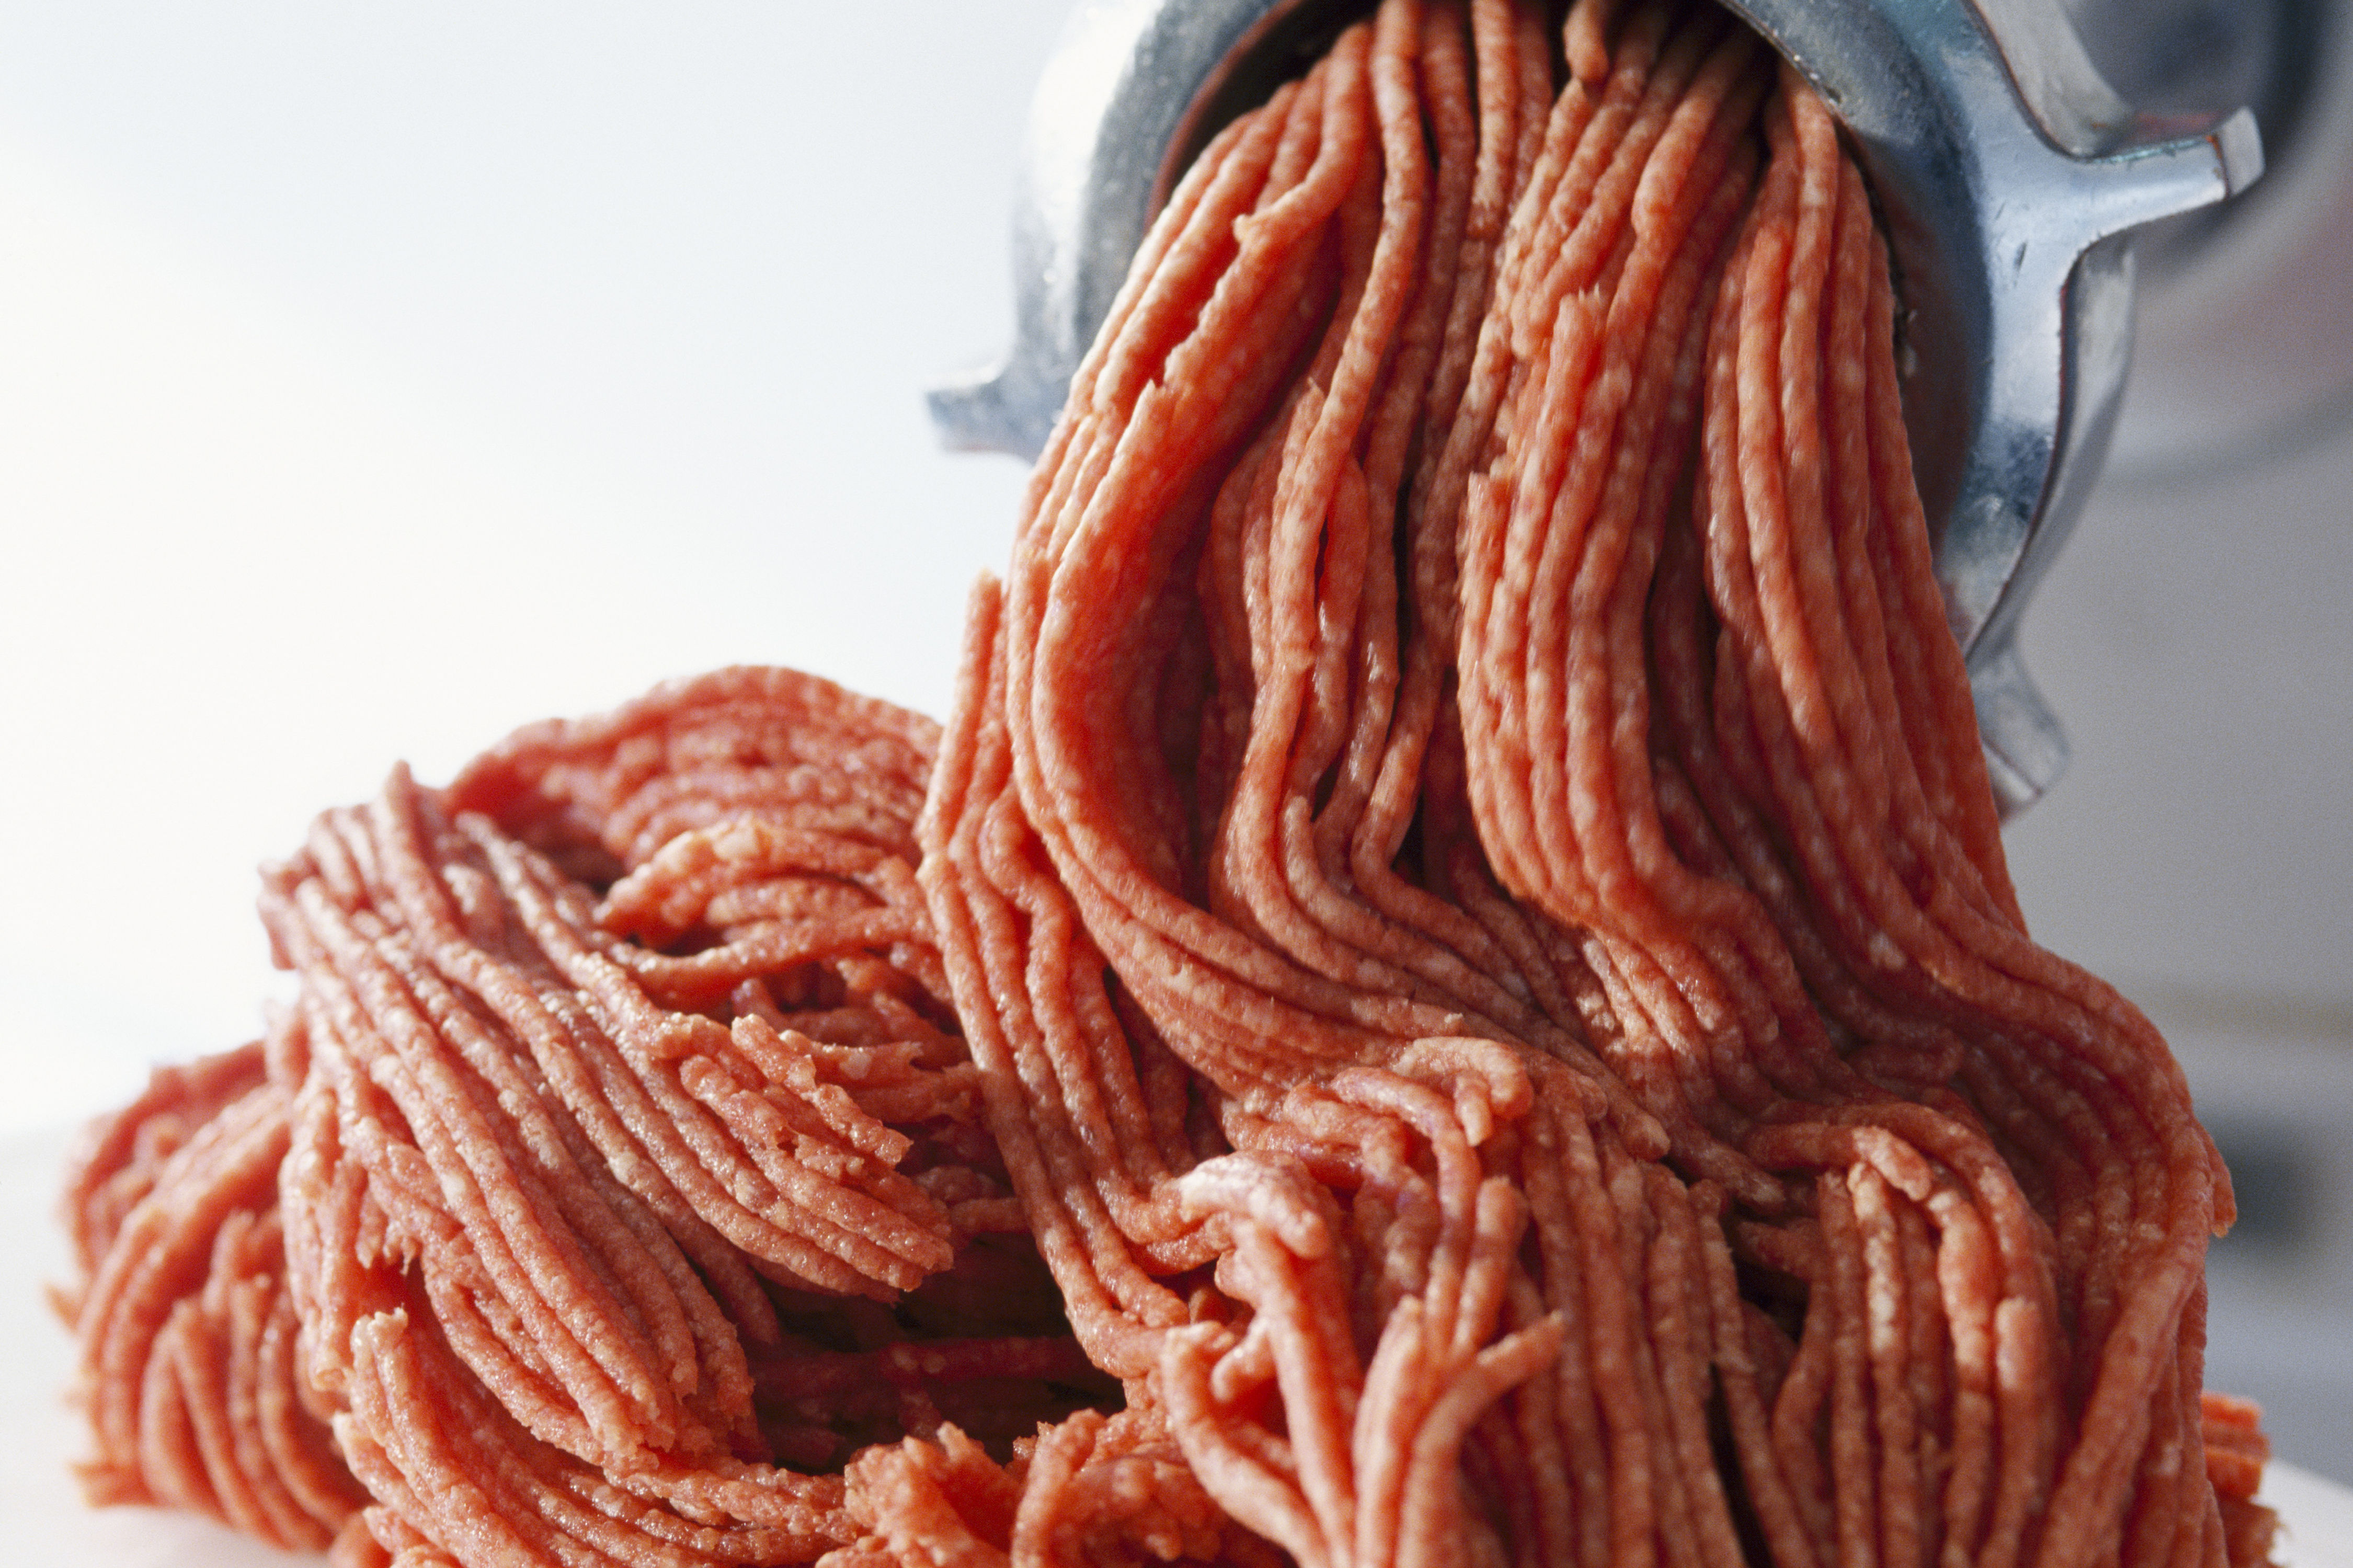 How to Tell If Your Kroger Ground Beef Has Been Recalled for Plastic Contamination